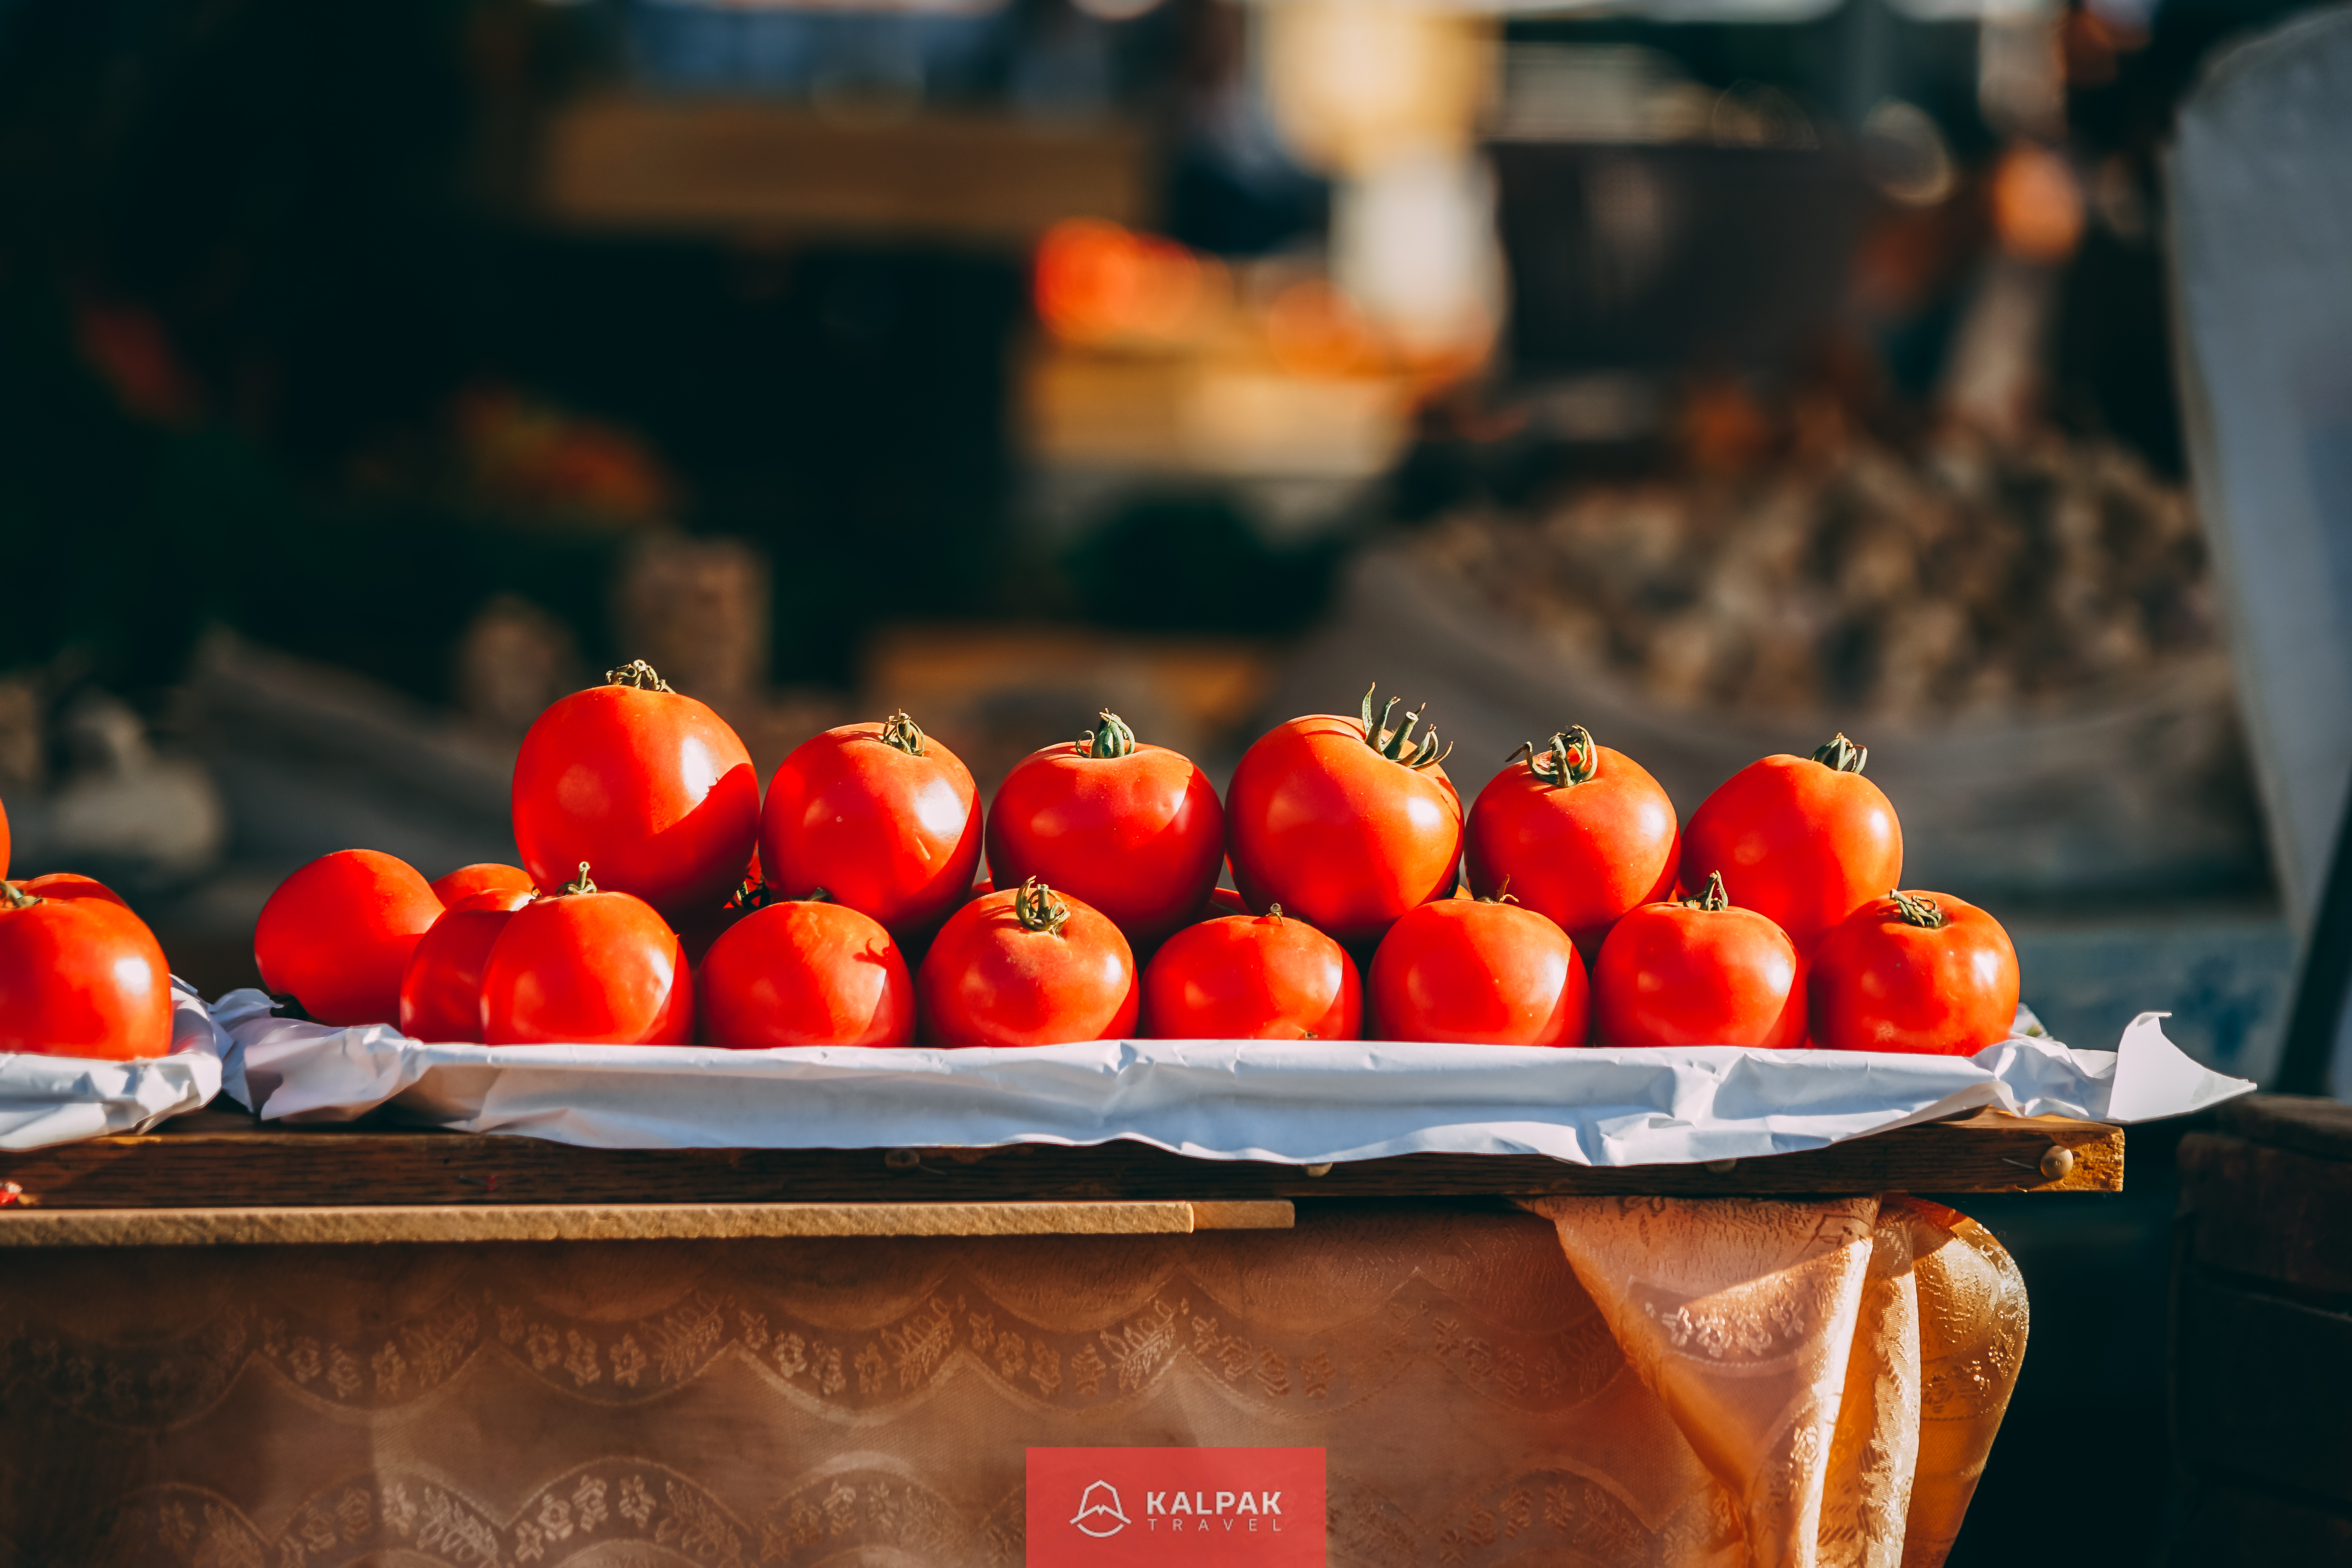 Central Asian vegatables in market, tomatoes